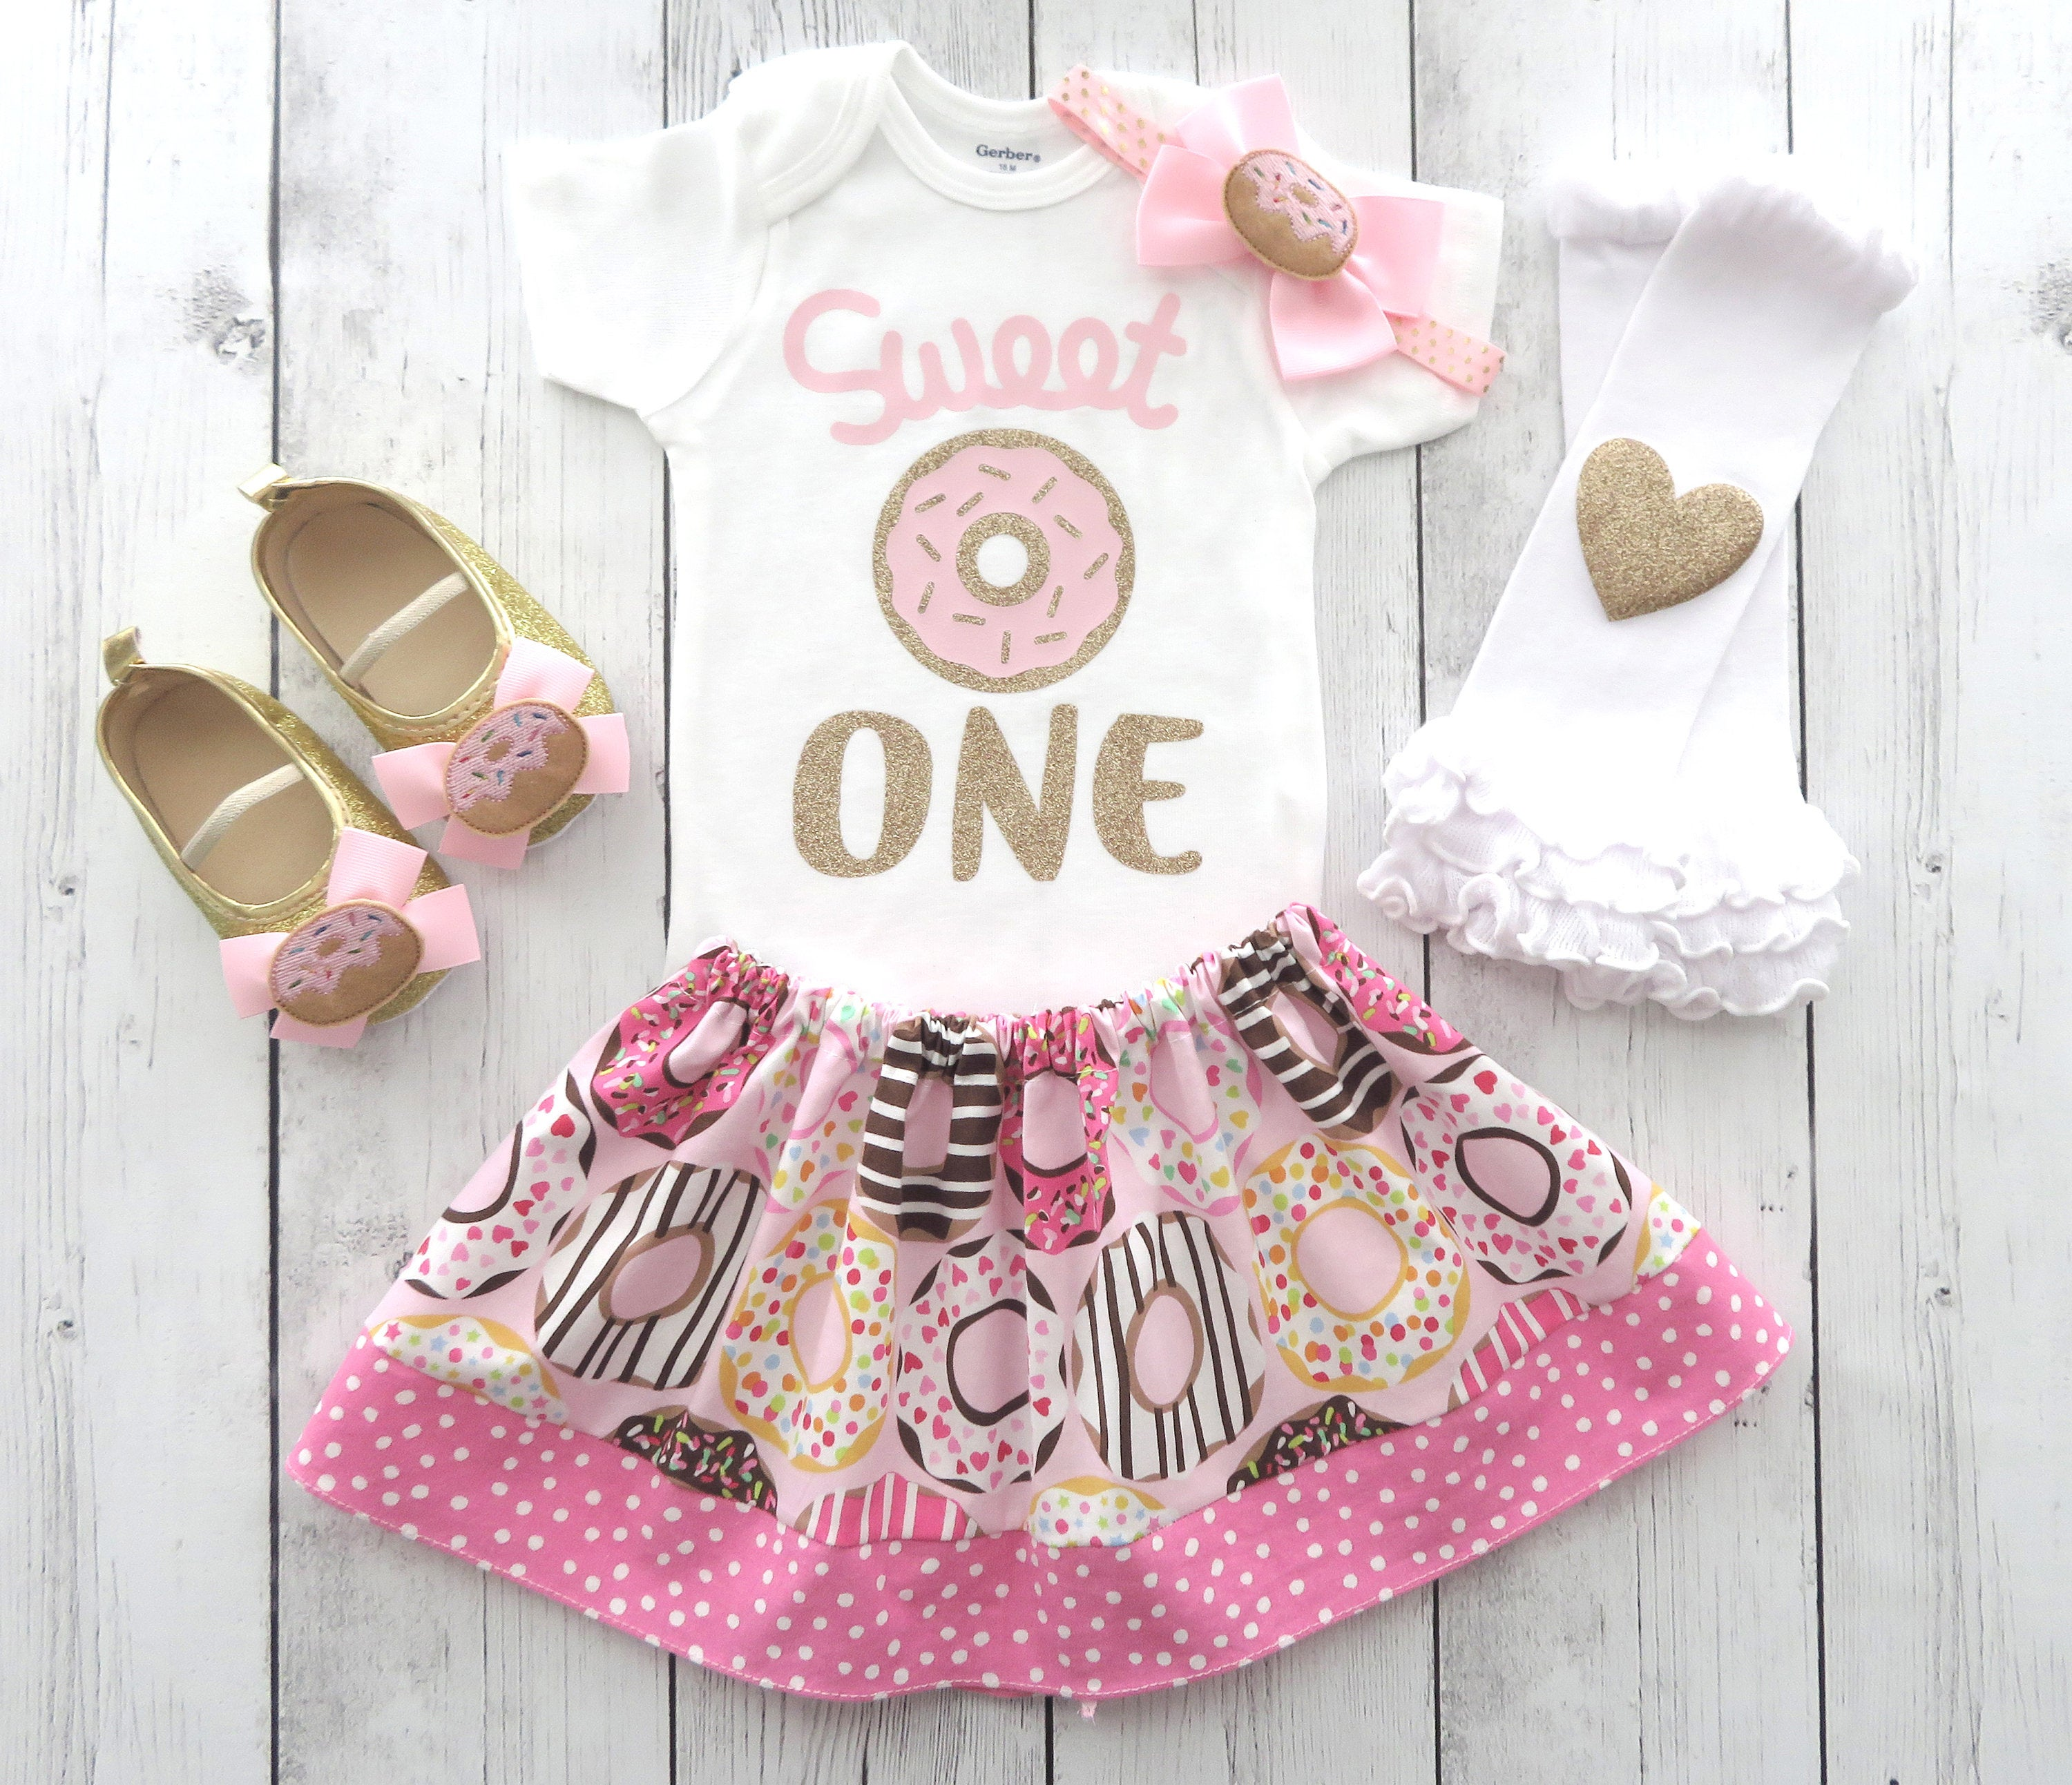 Donut First Birthday Outfit for girl - girl birthday outfit, pink gold, doughnut first birthday, sprinkles, pink gold donut outfit